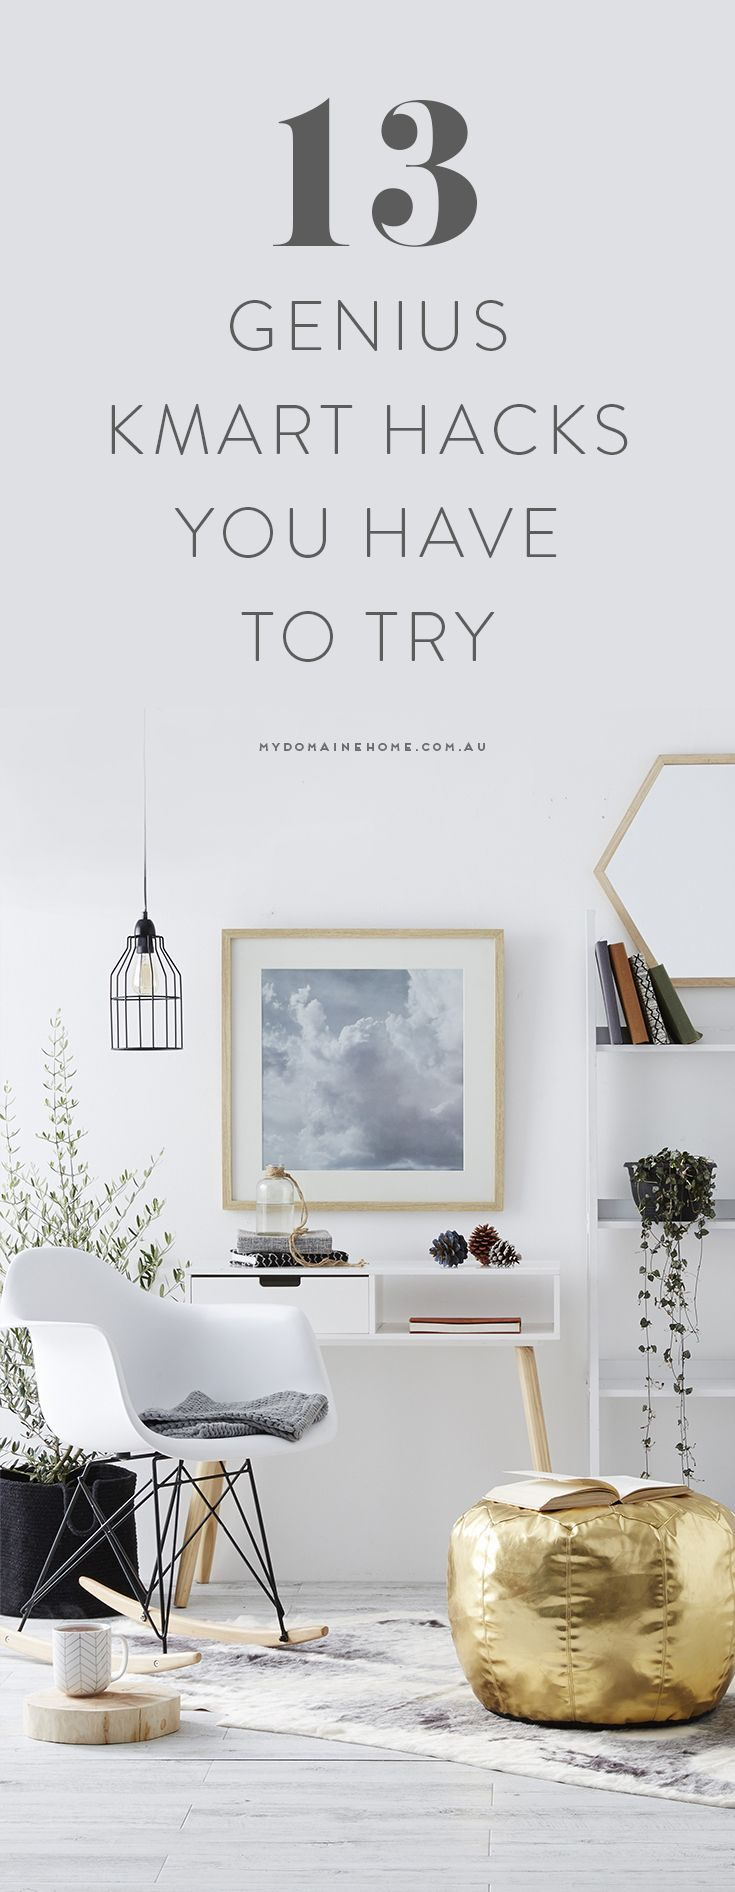 genius kmart hacks you have to try tips u tricks for the home